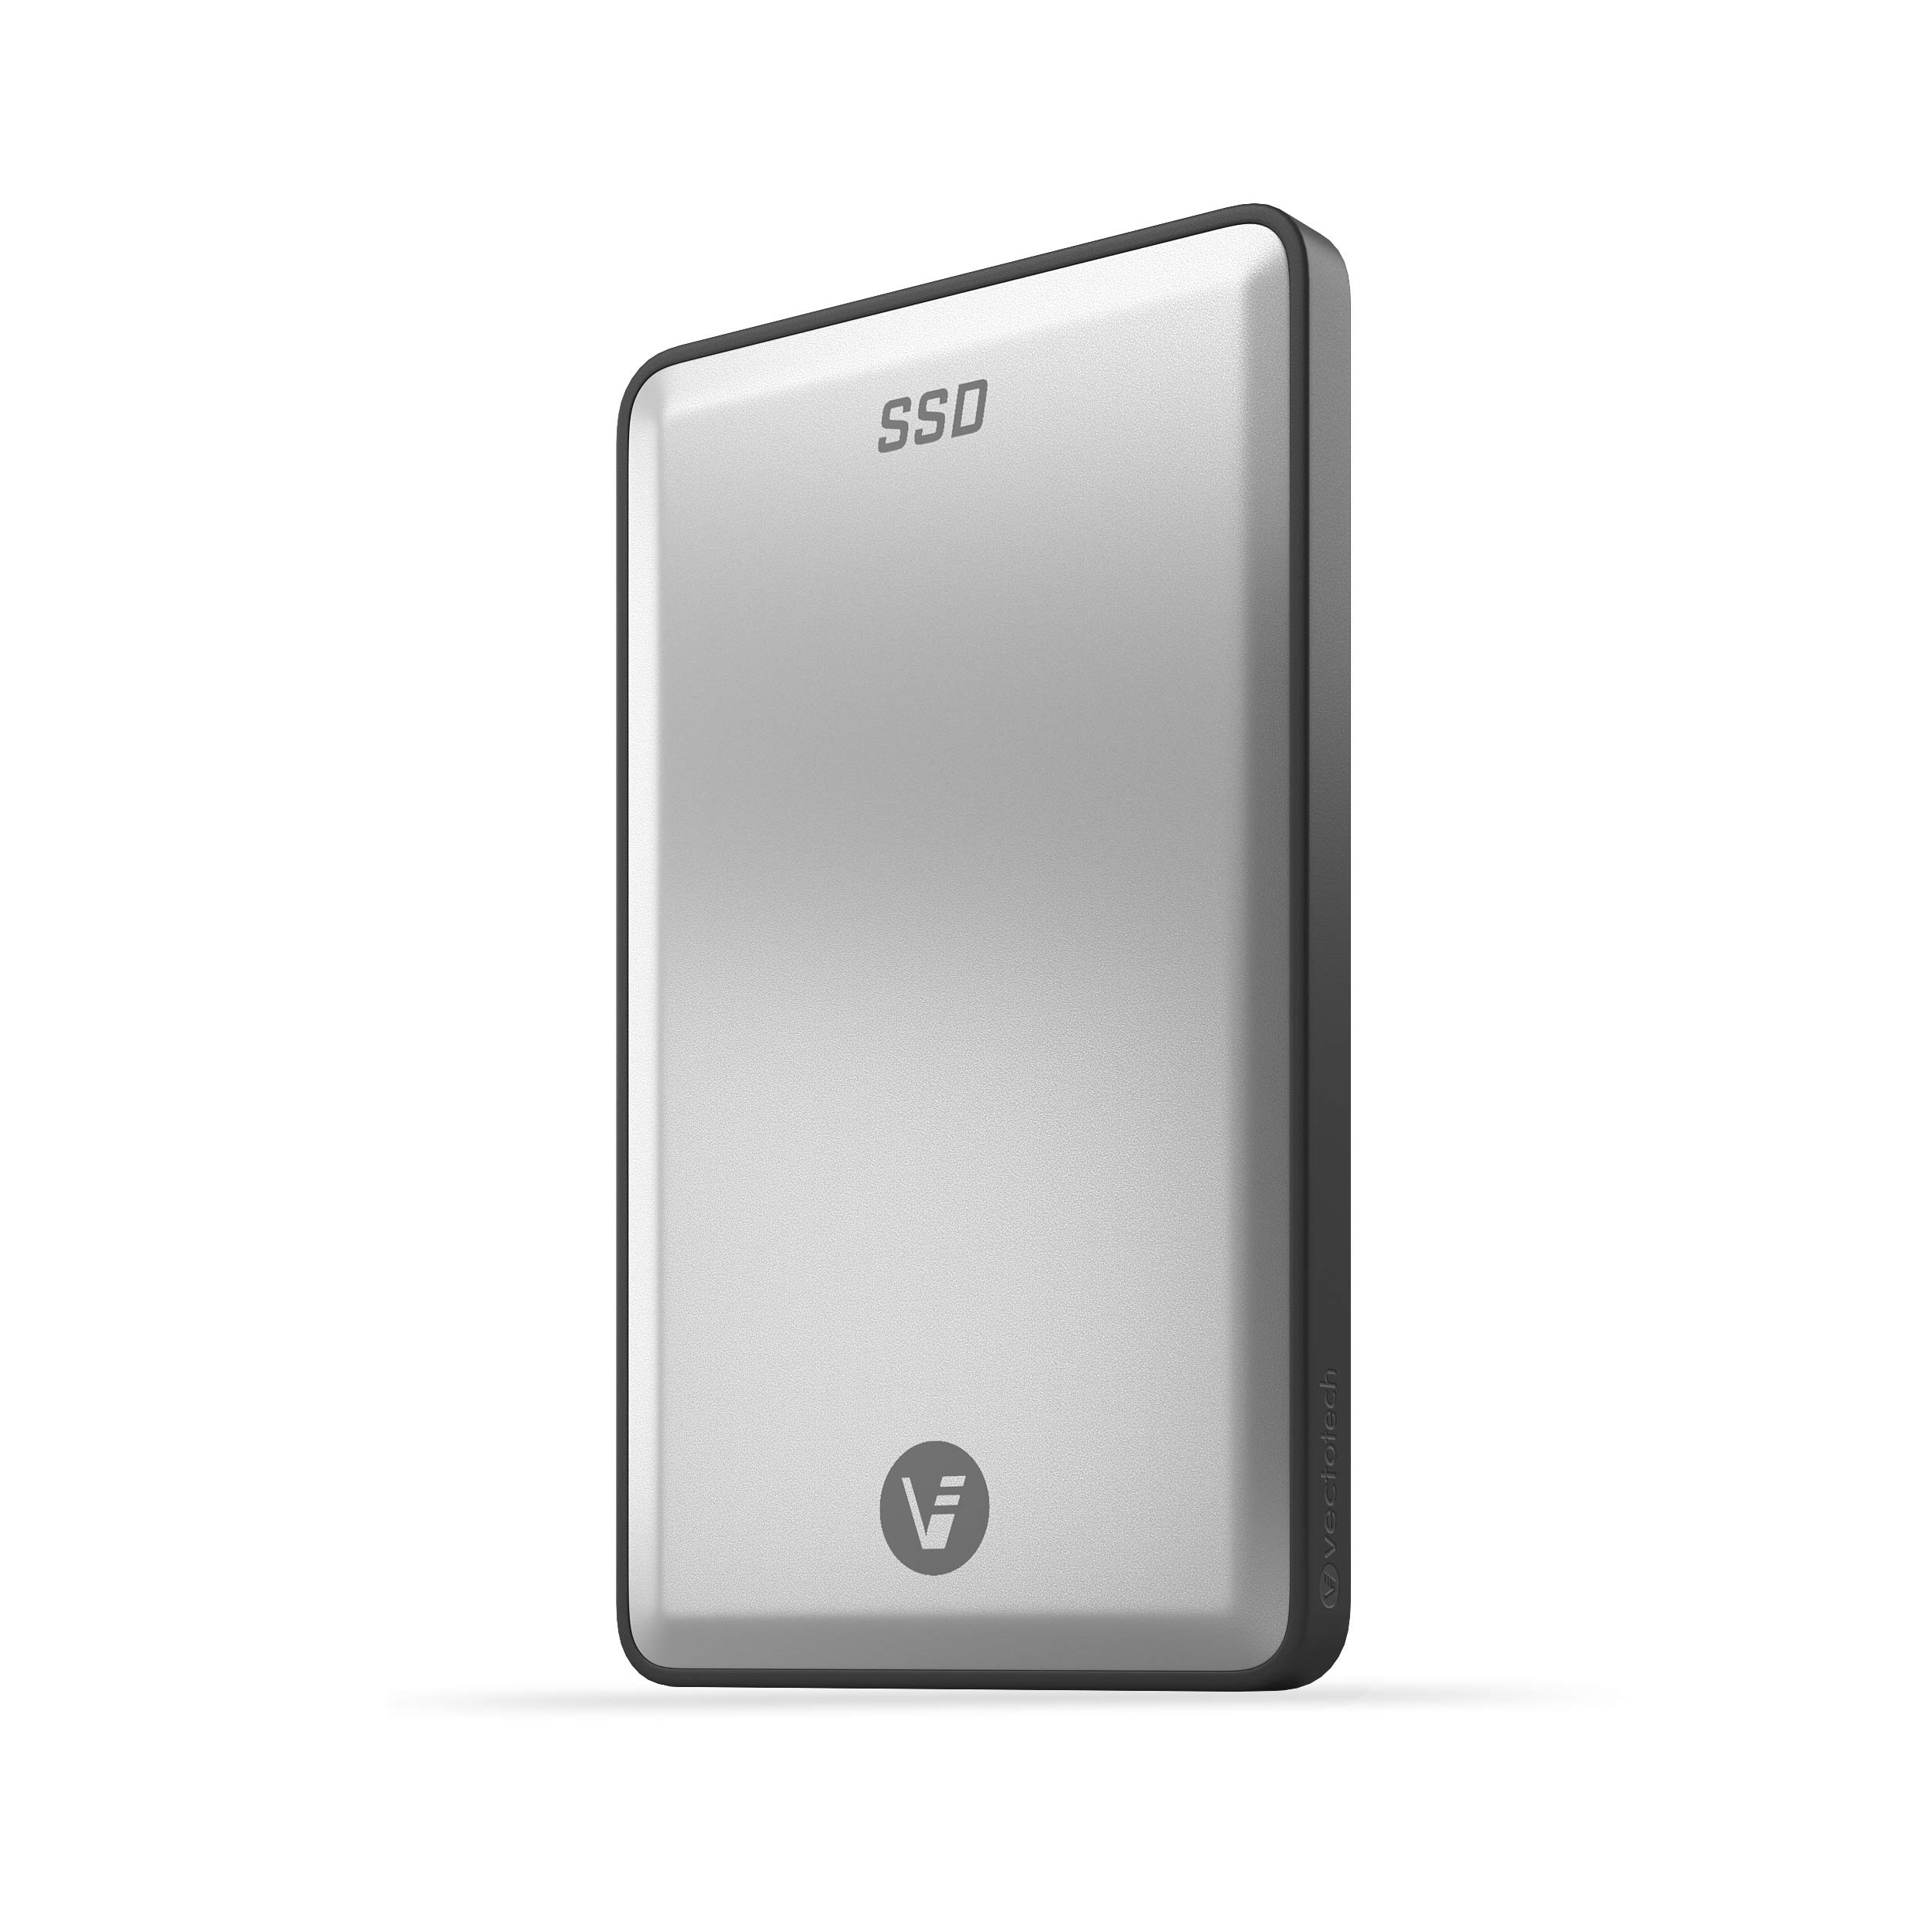 VectoTech Rapid 2TB External SSD USB-C Portable Solid State Drive (USB 3.1 Gen 2) by VectoTech